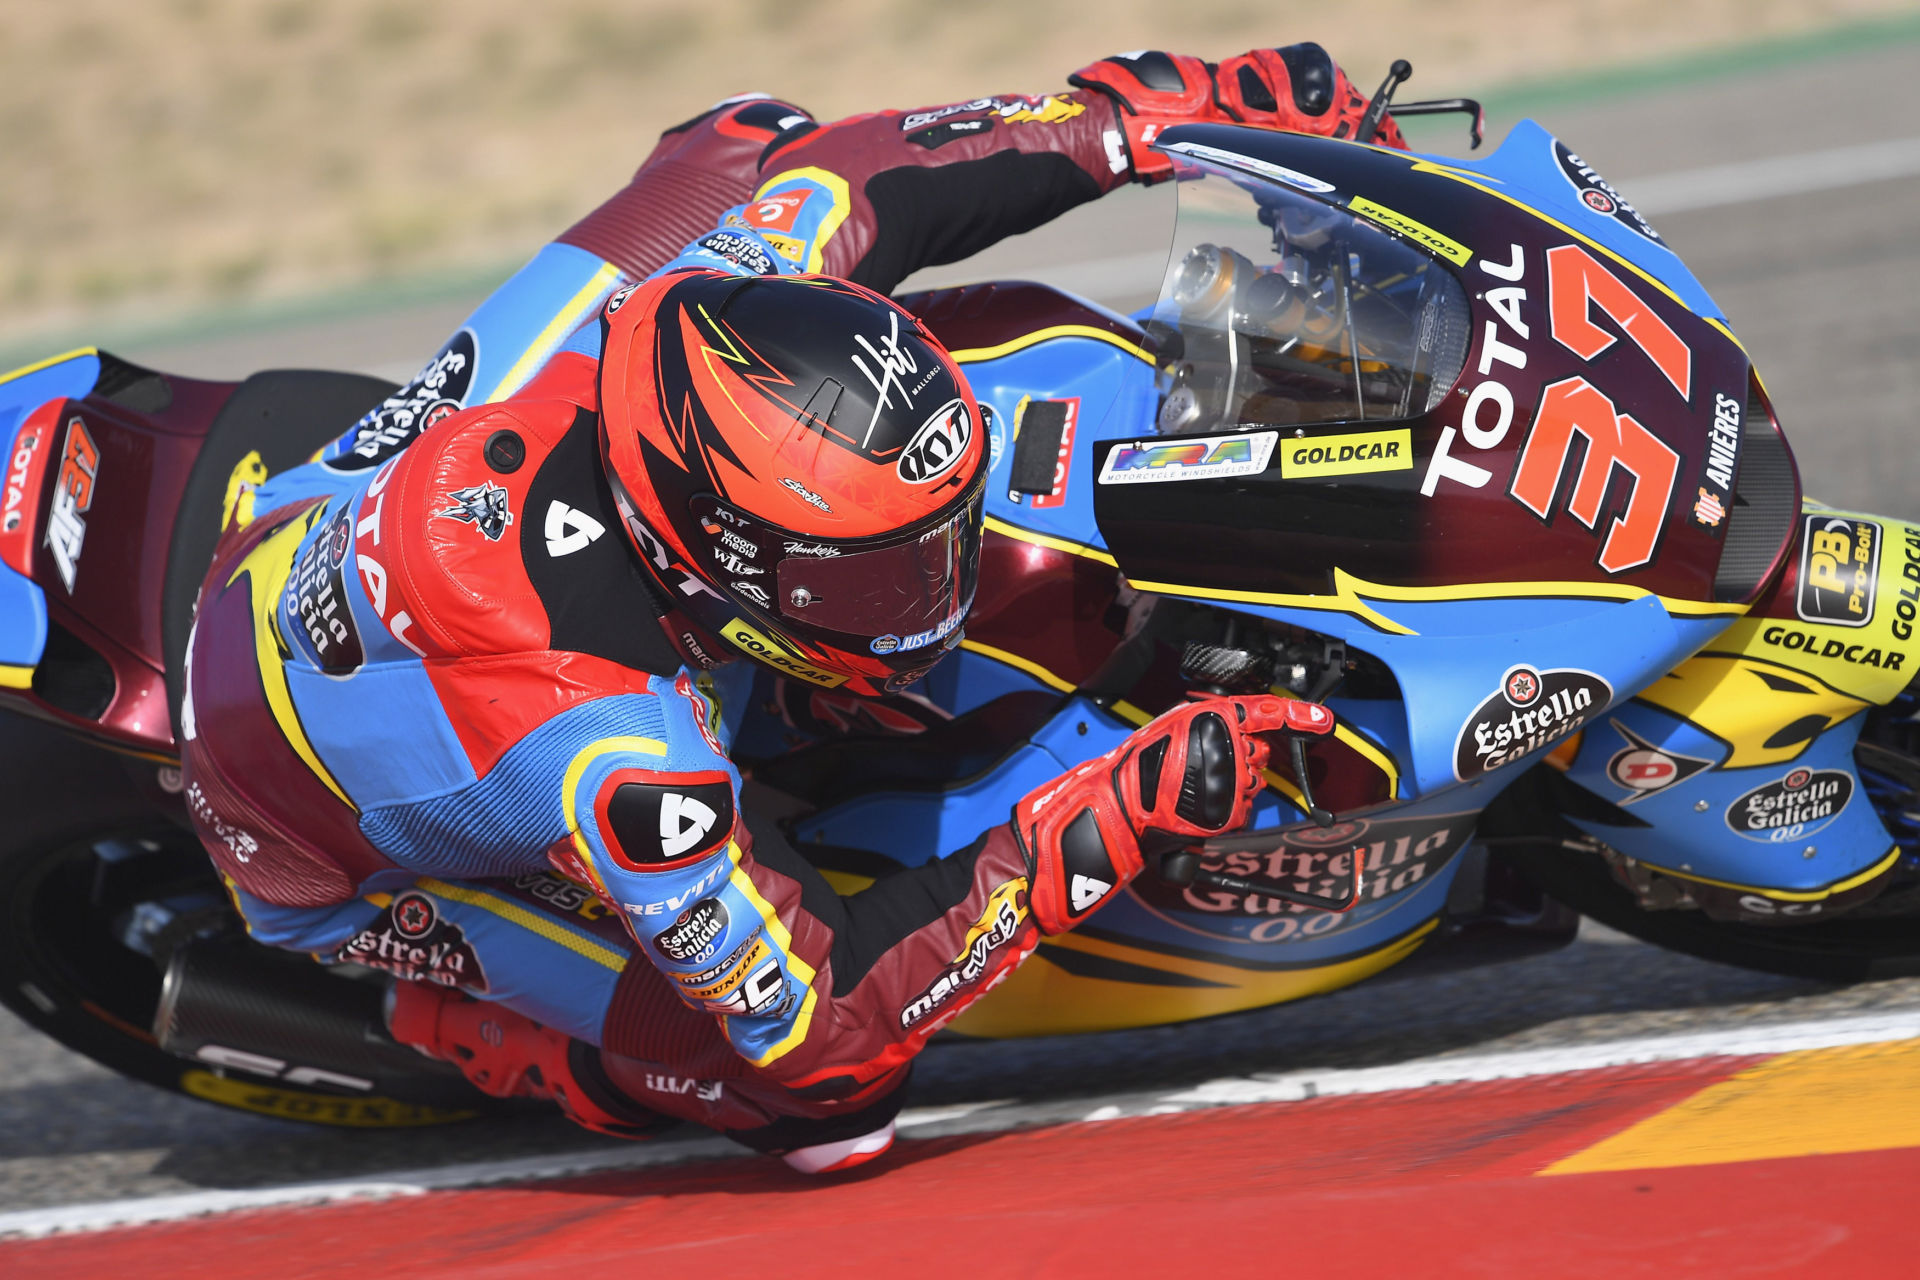 Augusto Fernandez (37). Photo courtesy Marc VDS Racing Team.